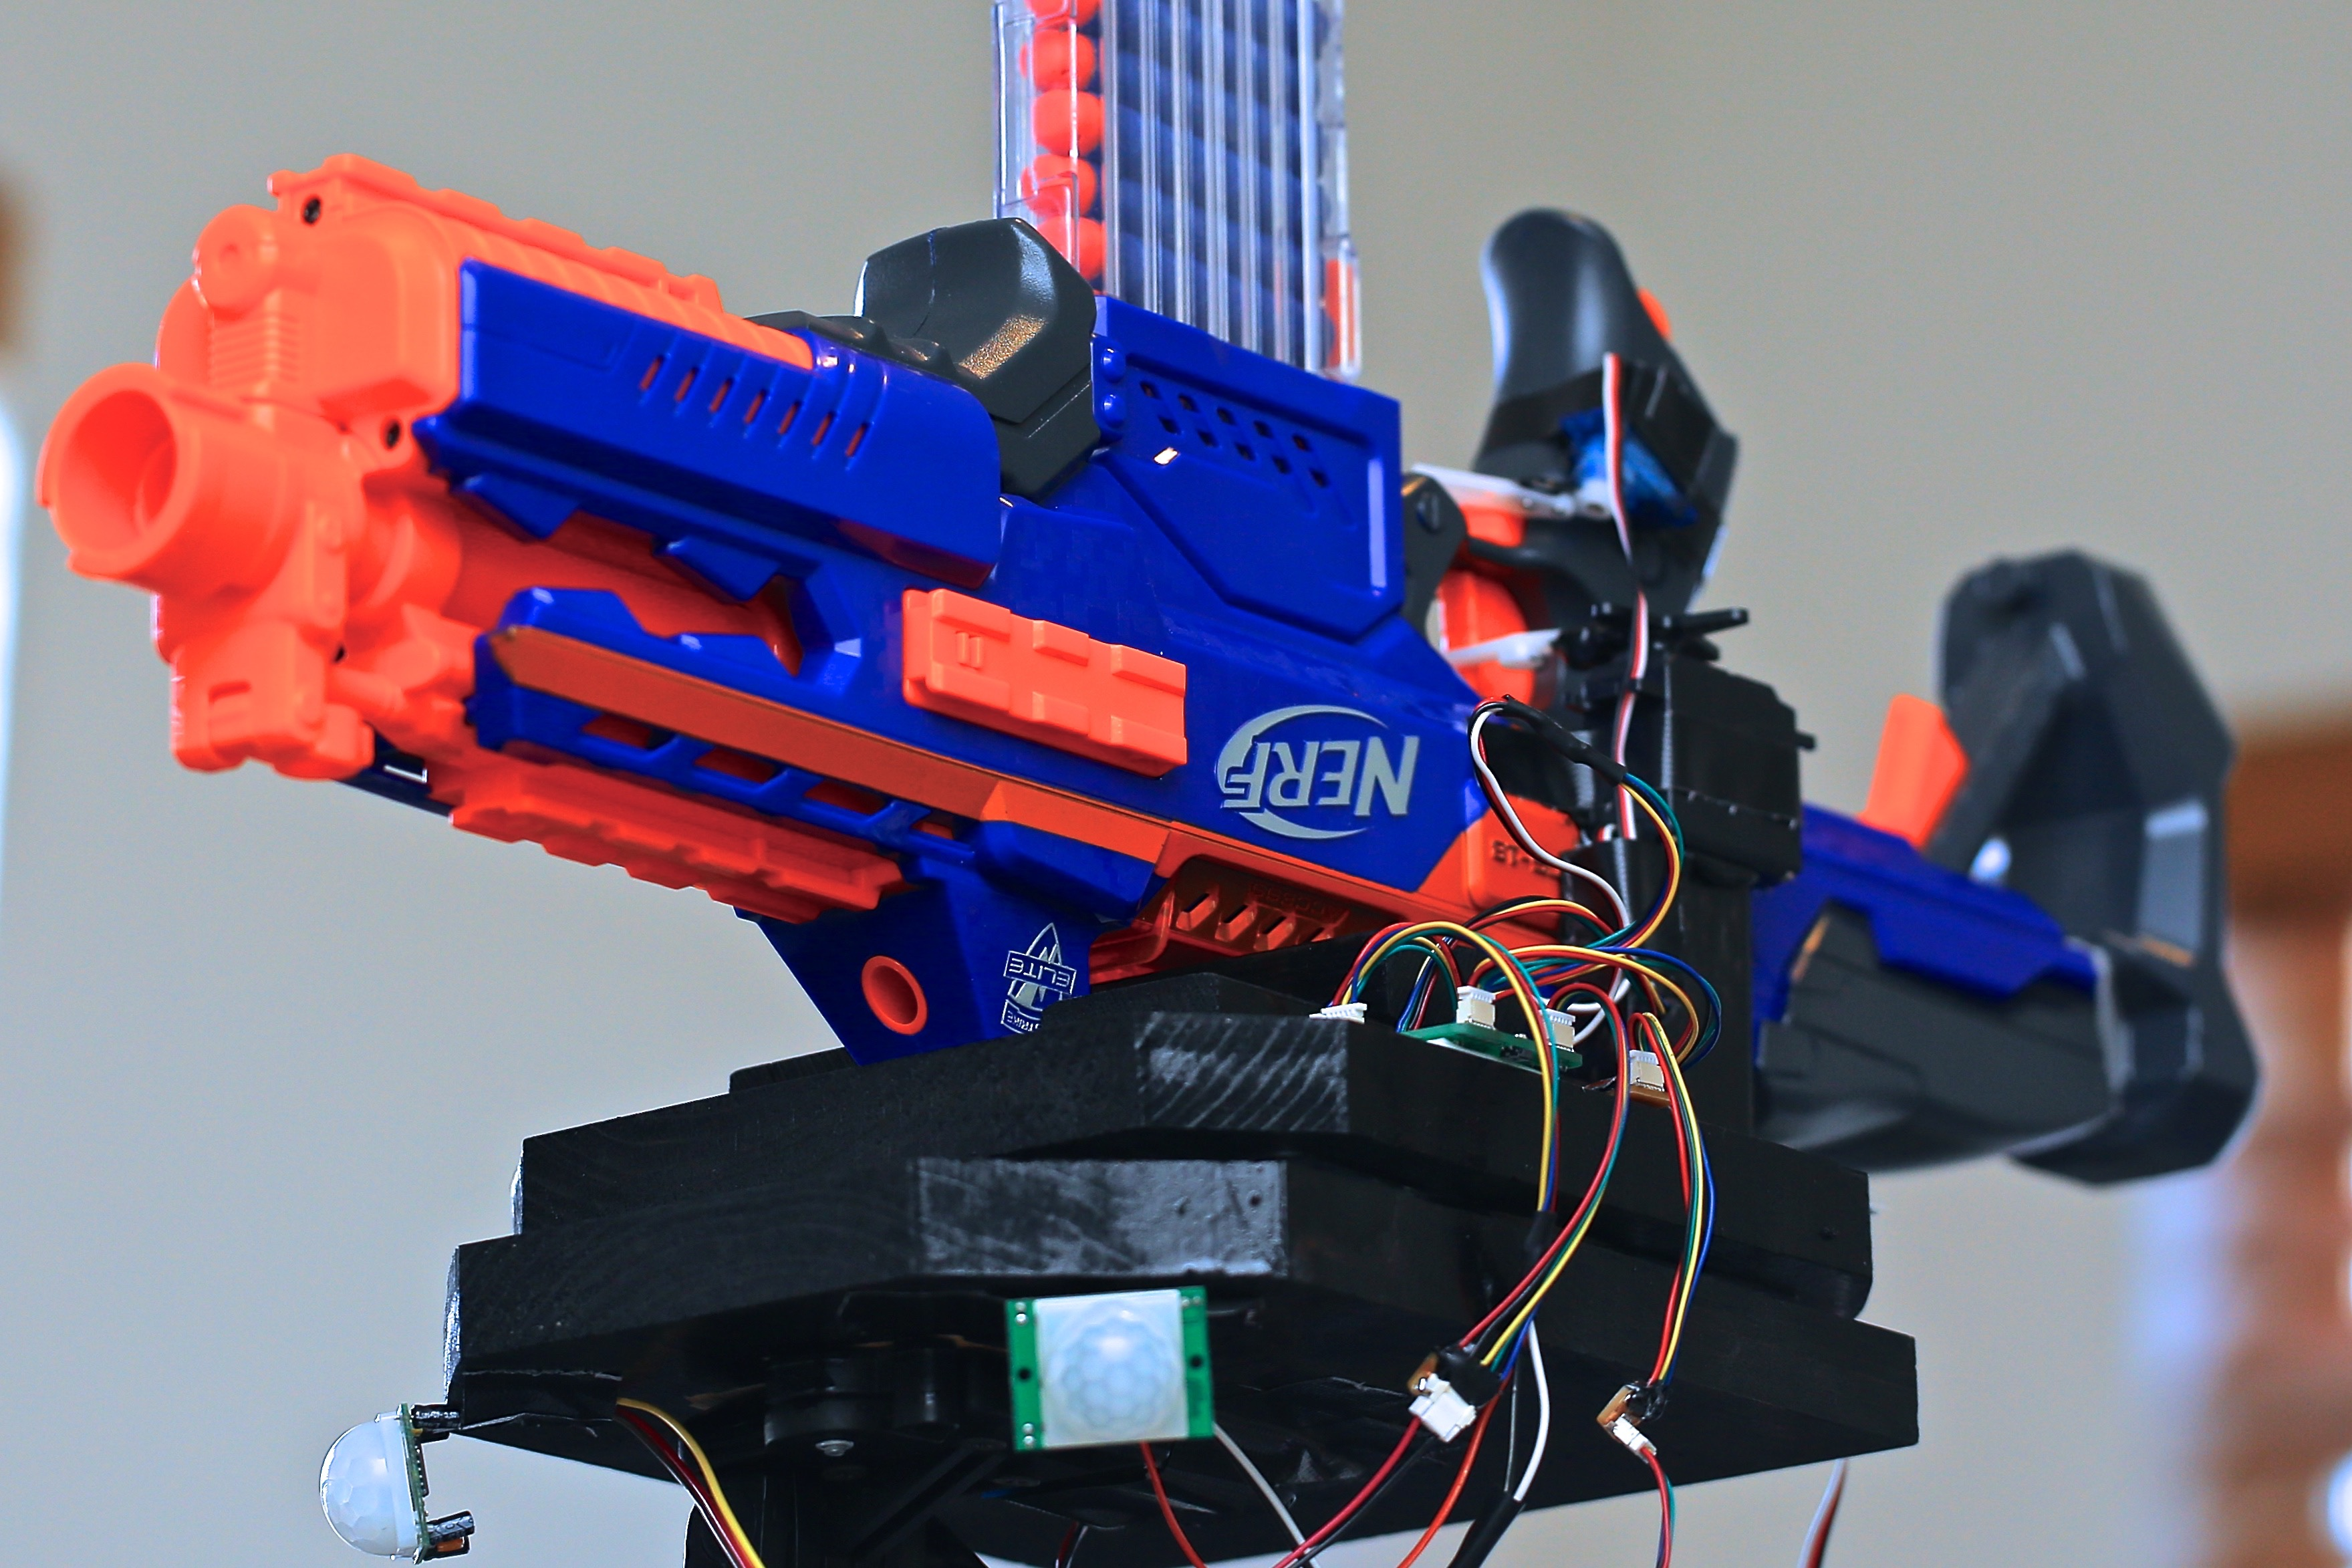 Foamland Security Sibling Proof Your Stuff With A Nerf